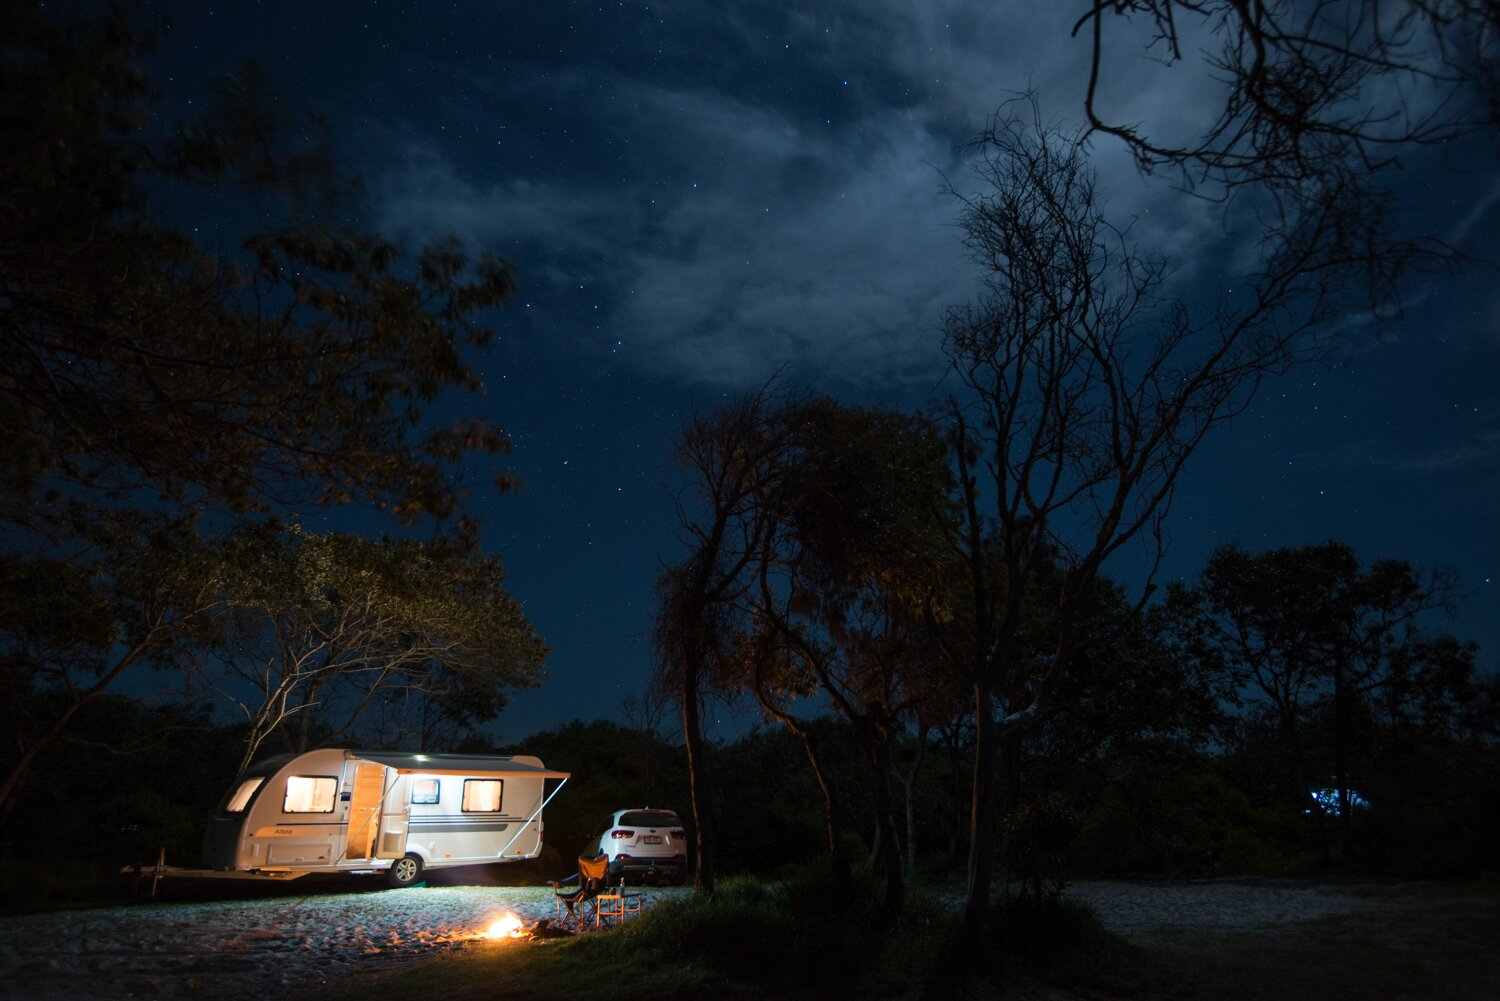 Tasmanian free camp shut down by council - Time to Roam